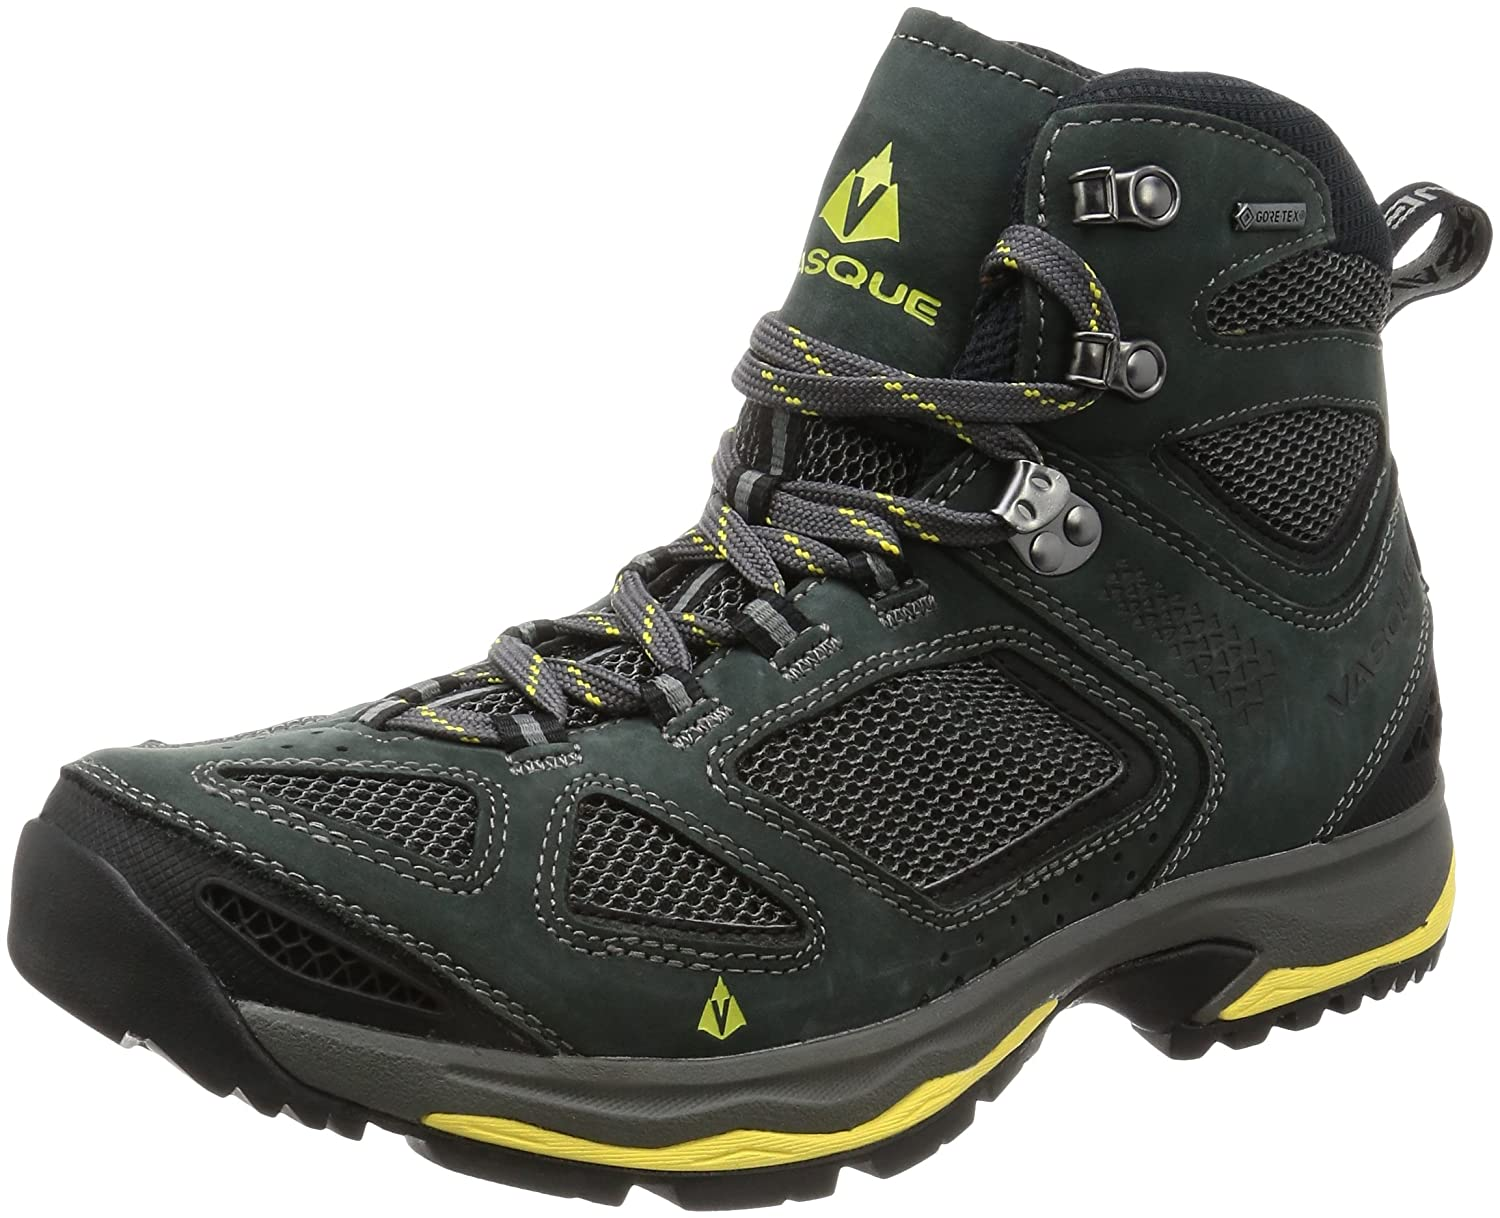 Vasque Menƒ_Ts Breeze III GTX Hiking Boots, Black Olive B01F5JYWPY 11.5 D(M) US|Magent / Yellow